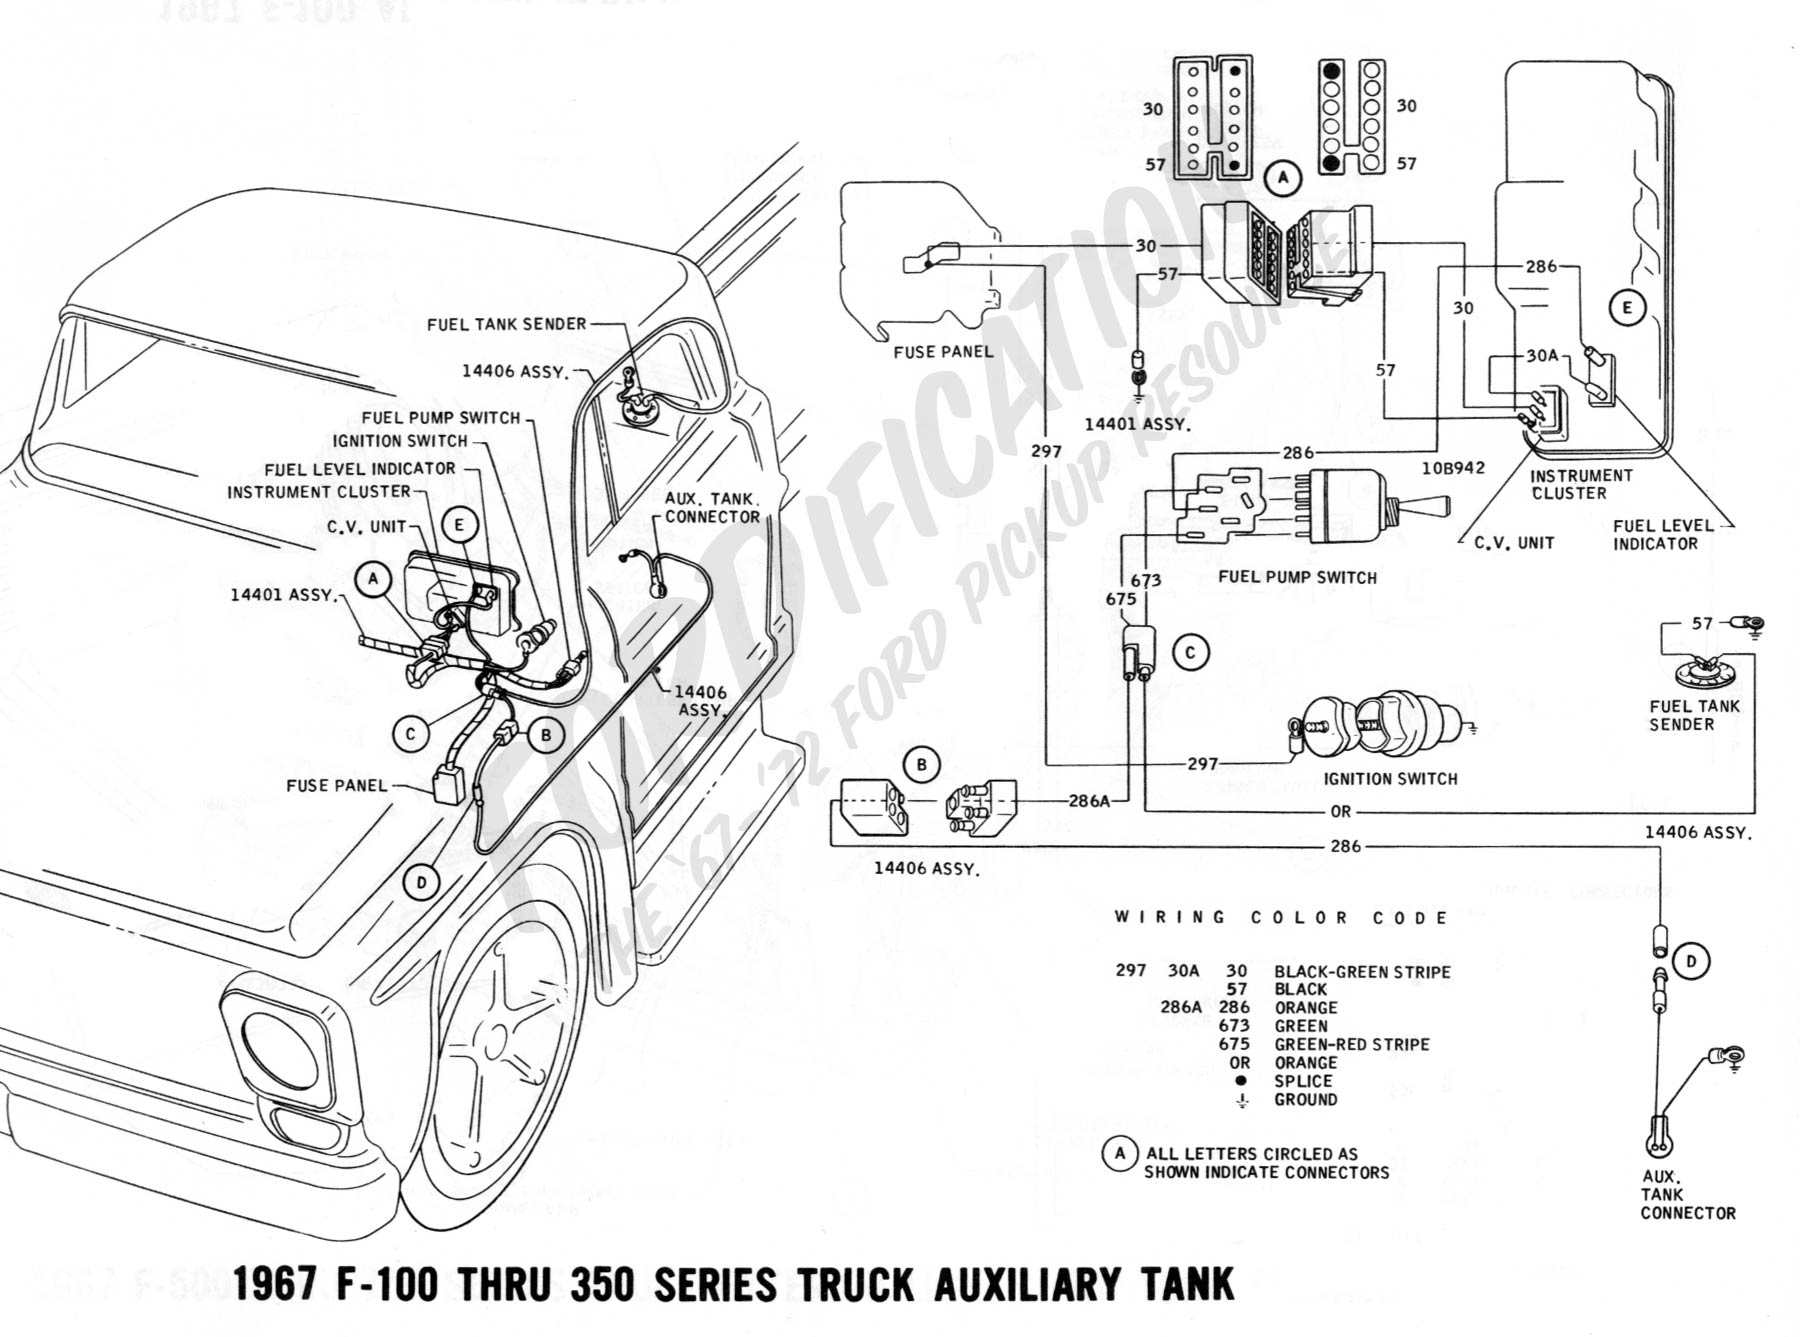 hight resolution of 1989 ford f250 fuel line diagram wiring diagram operations 1988 ford f 250 fuel diagram